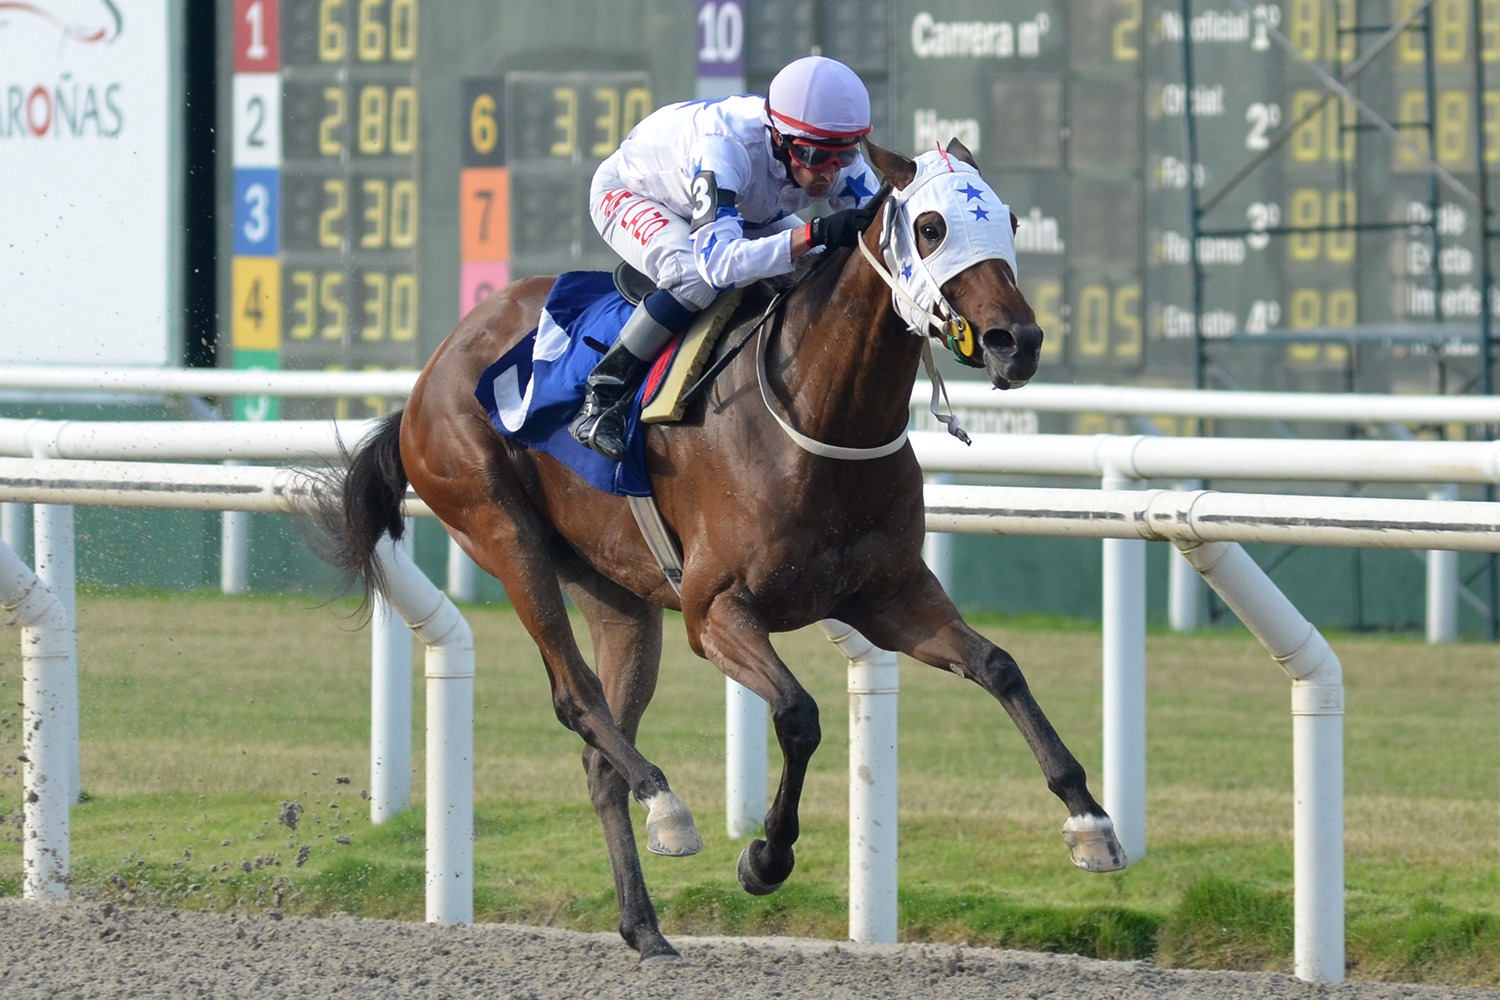 Deliciosa (Smarty Jones) gana Condicional (1500m-Arena-MAR). - Staff ElTurf.com